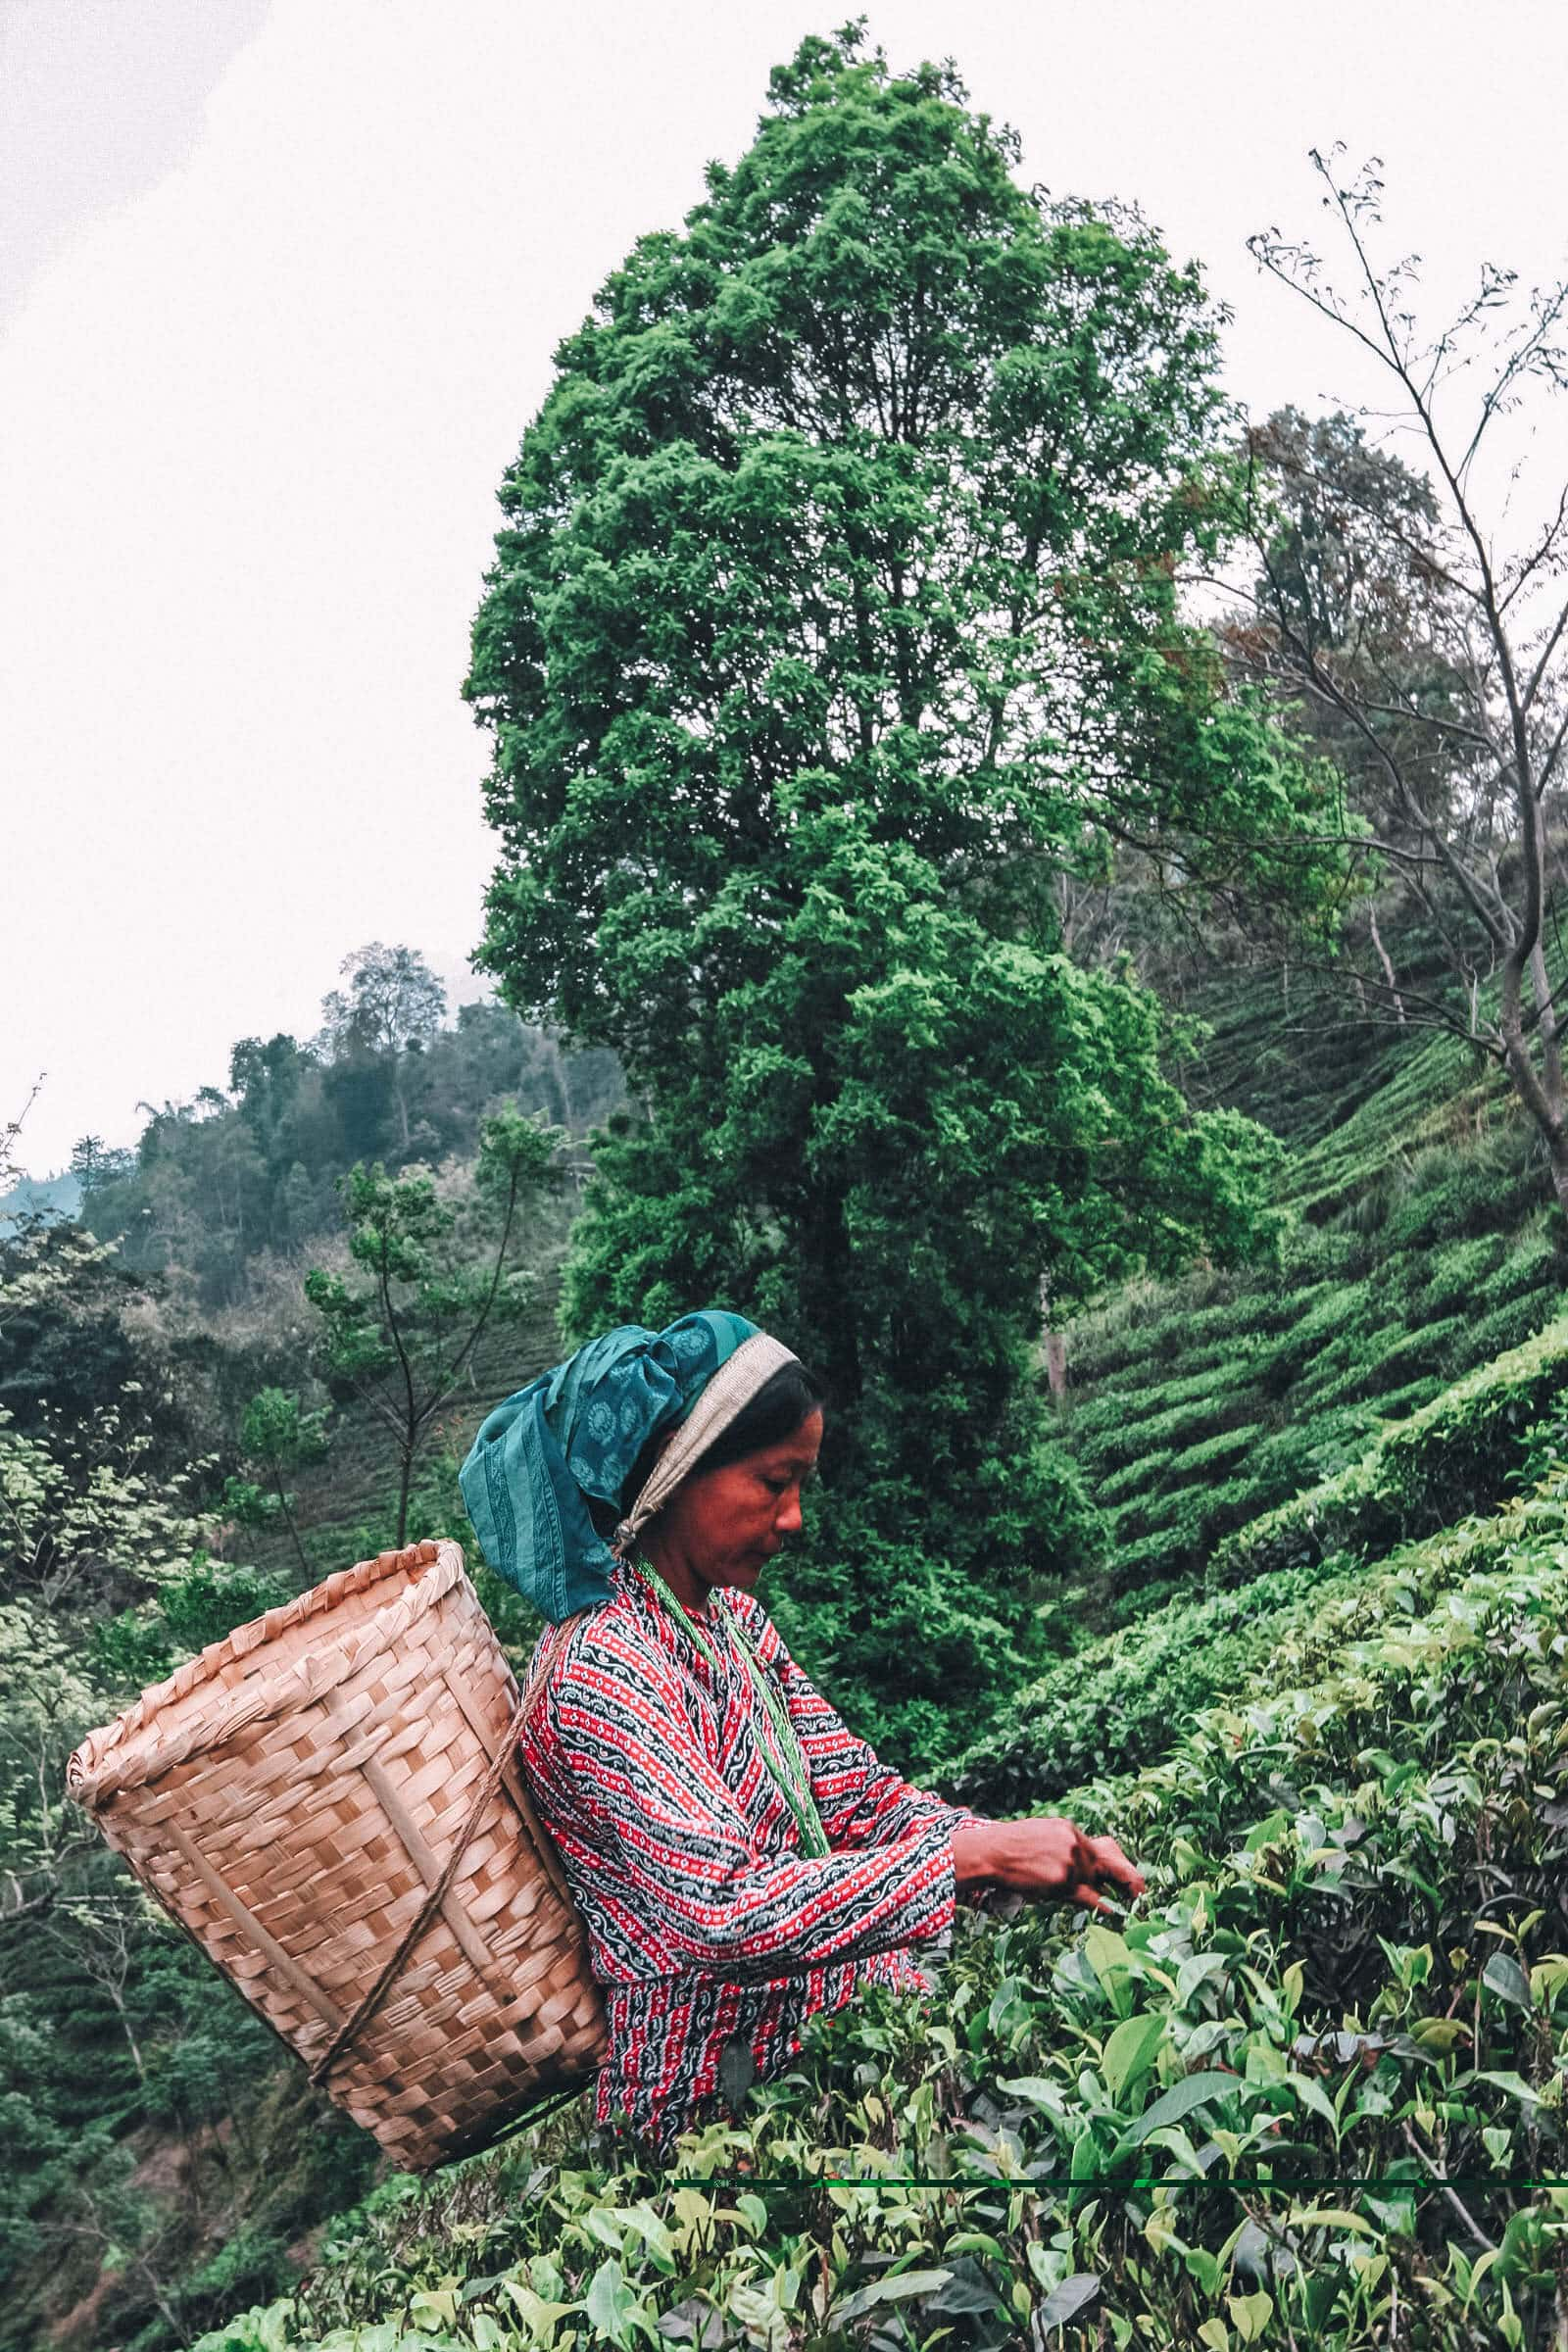 Tea picker in off the beaten track Bengal near Darjeeling